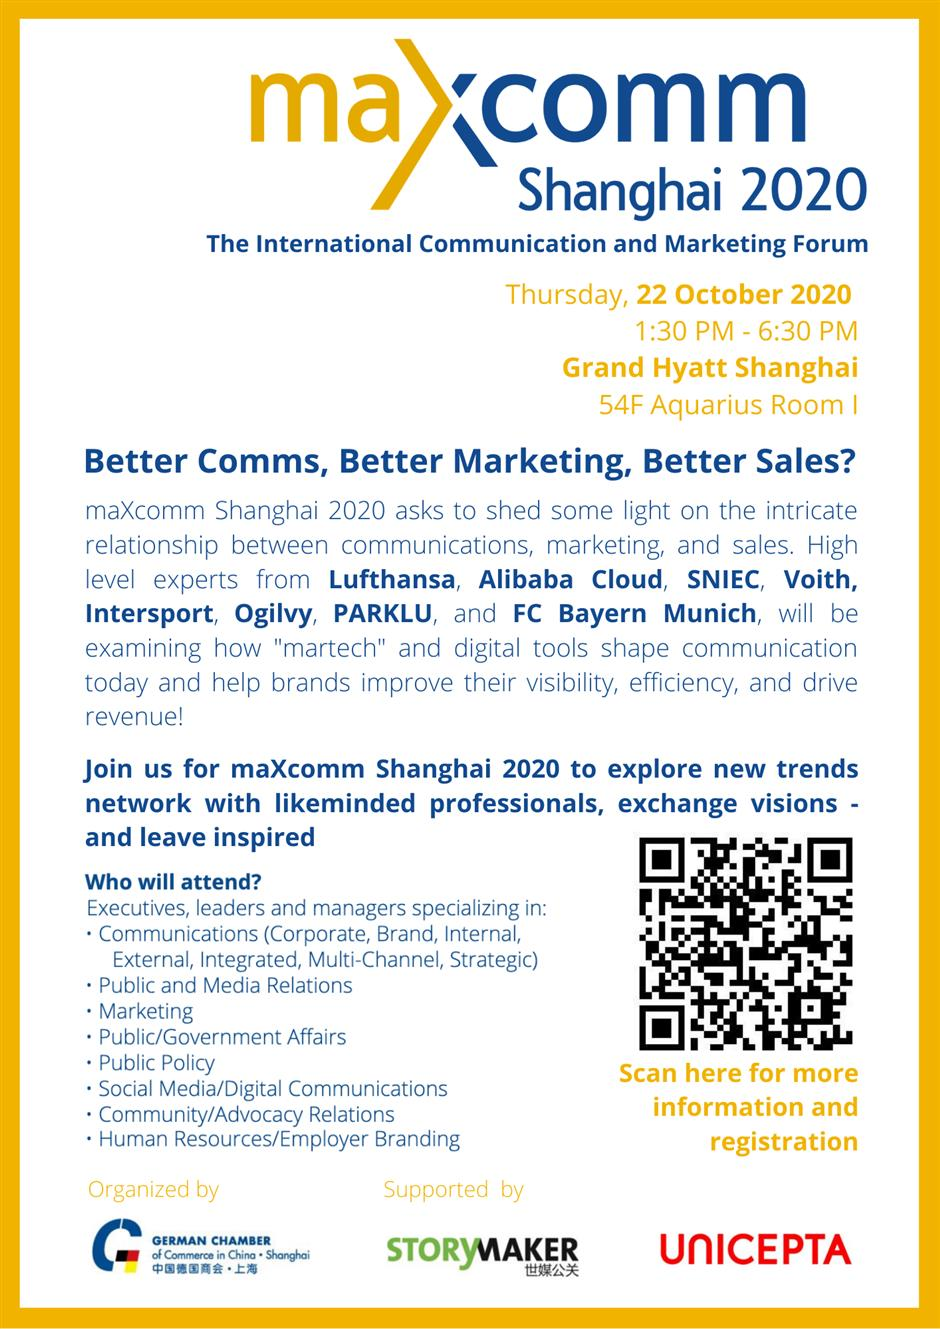 International communication and marketing forum to be held in Shanghai